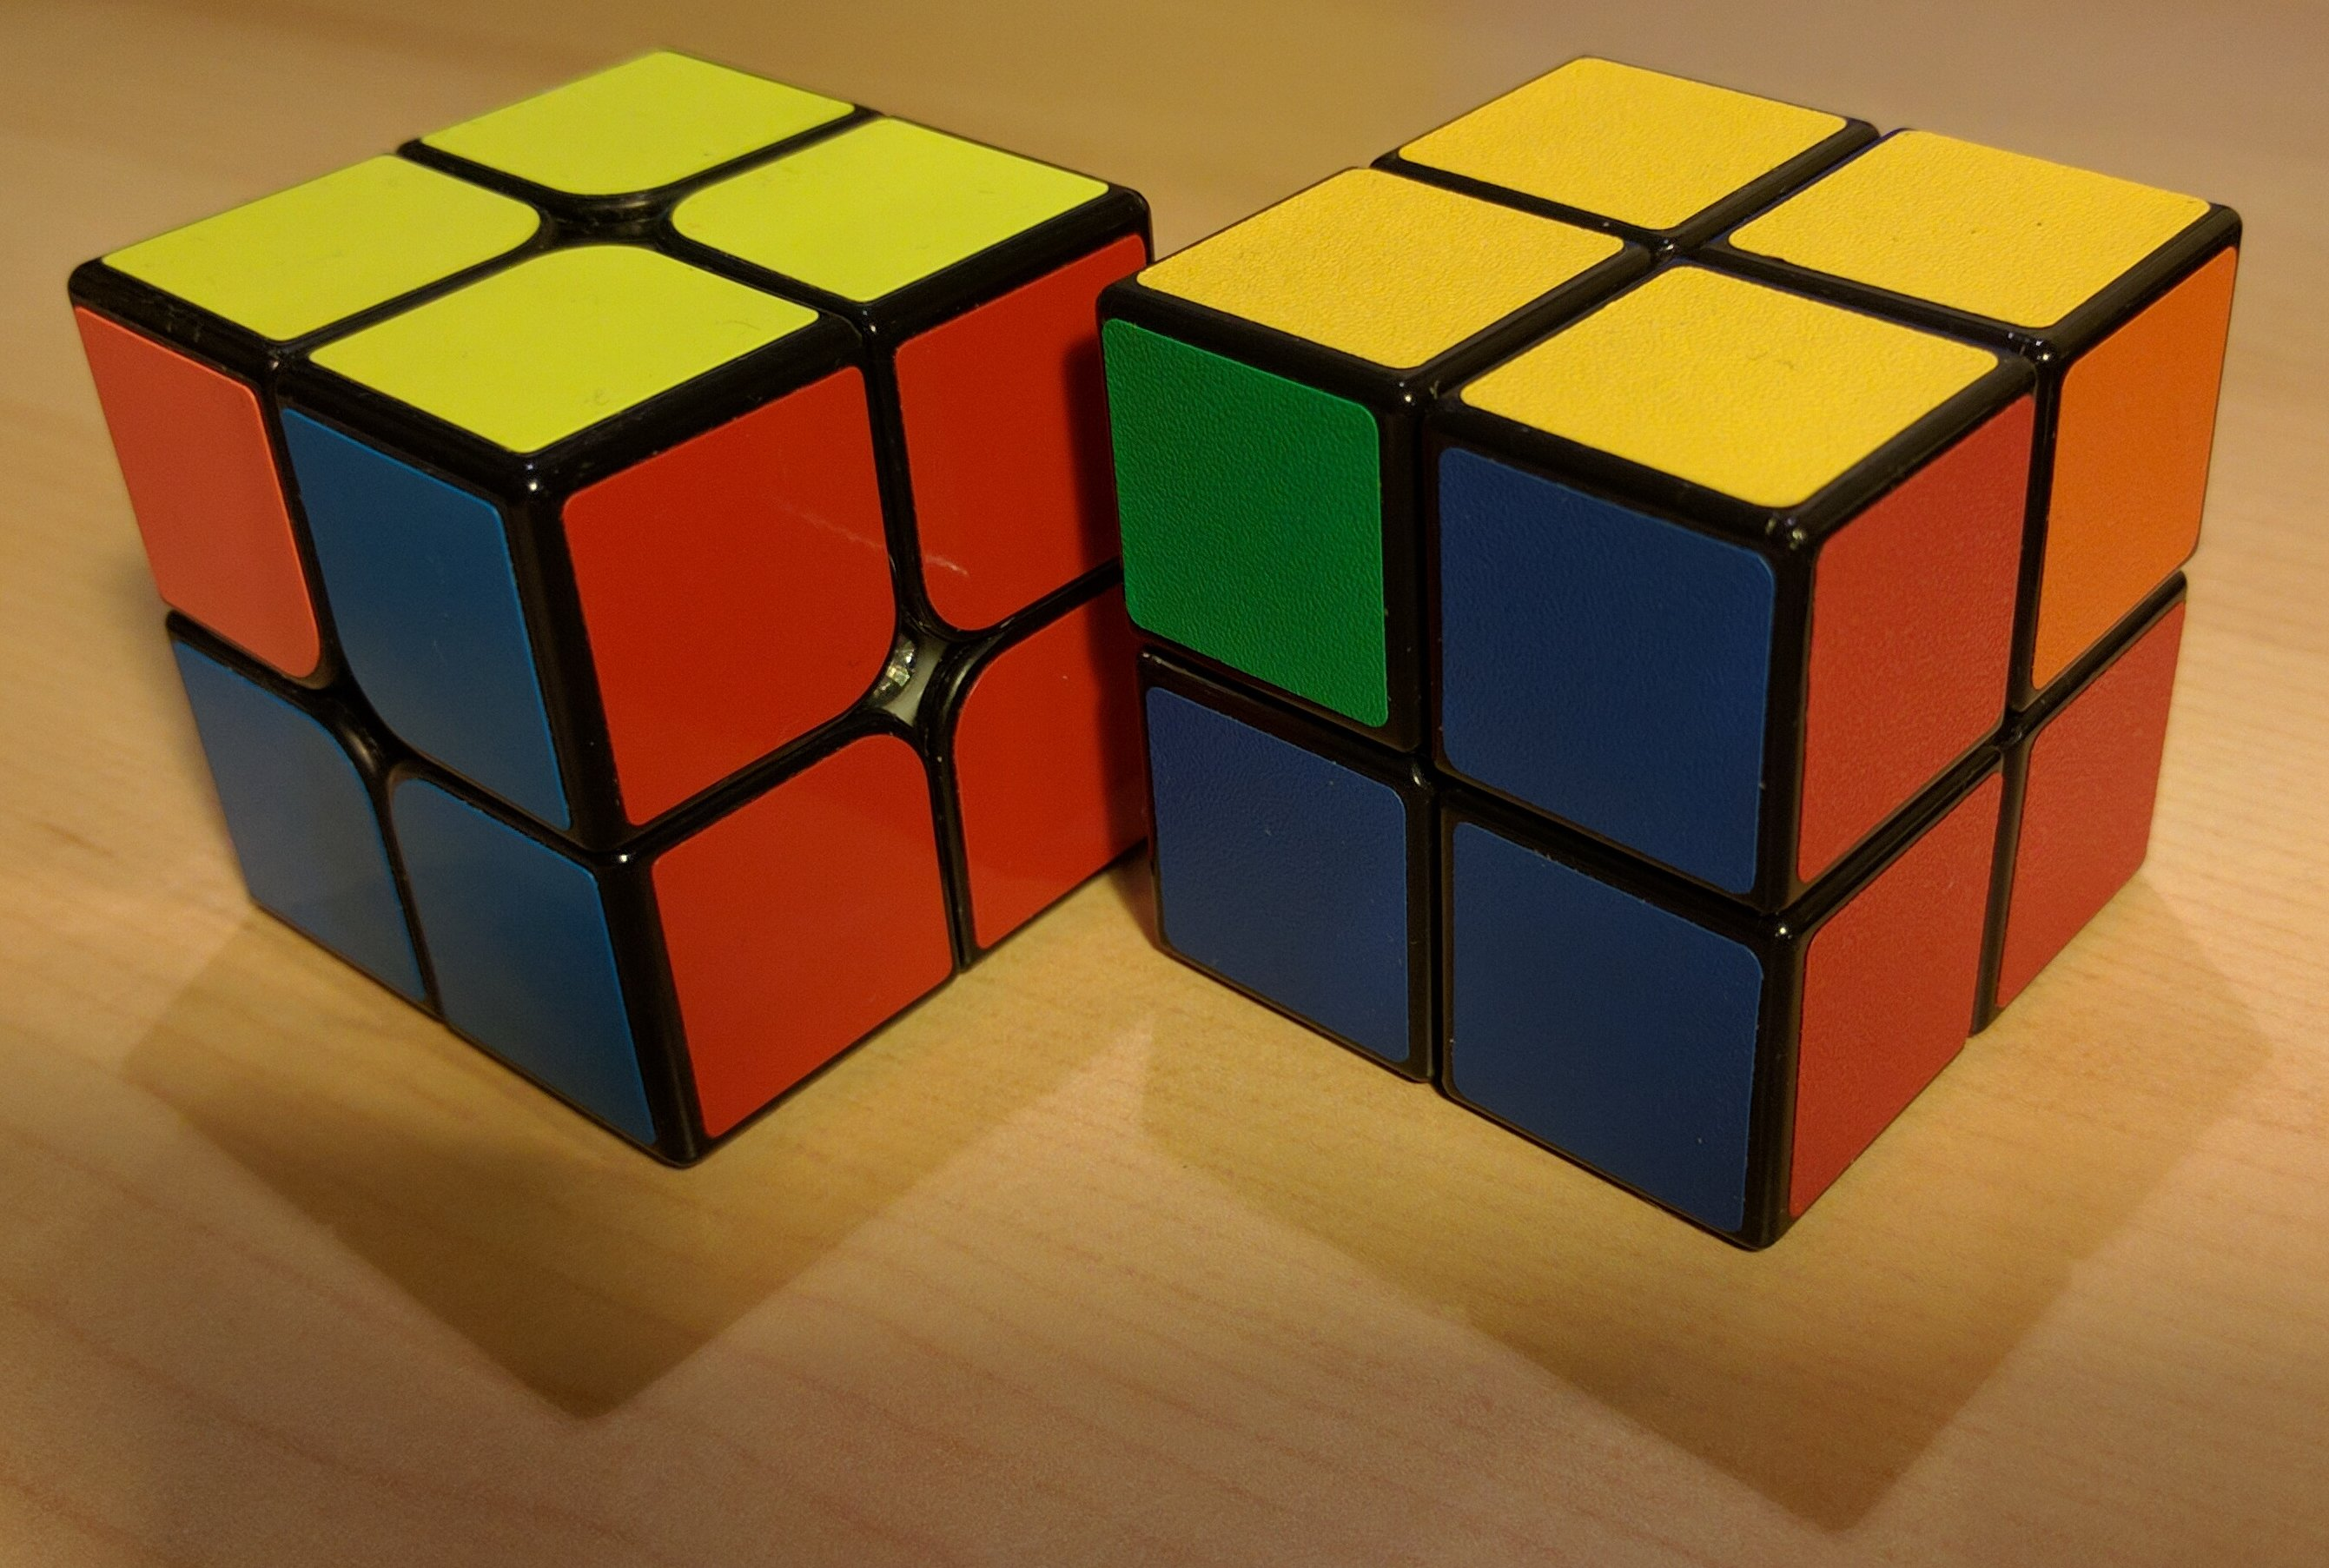 To Solve The Cube In Situation #2 We Need To Find Those Two Adjacent Pieces  On The Side Of The Yellow Layer That Has The Same Color, Rotate The Yellow  U